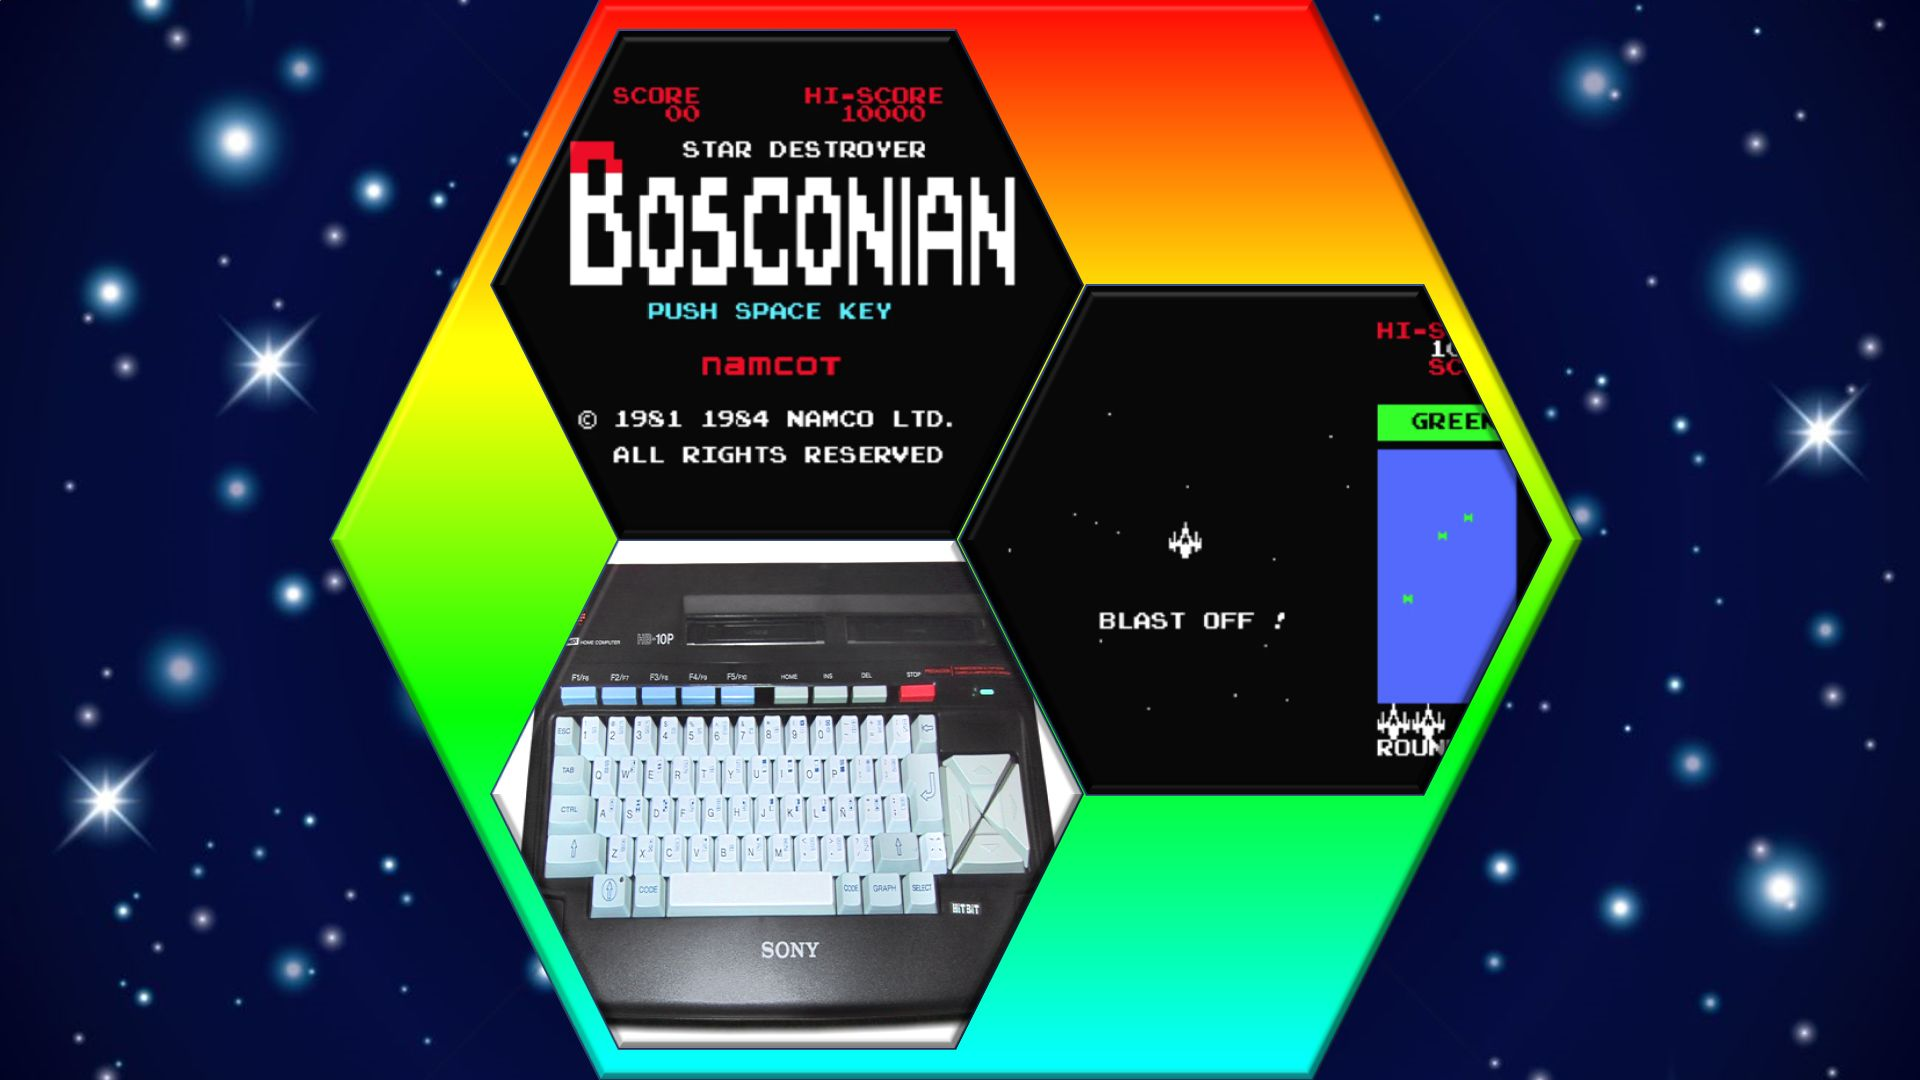 /bosconian-msx1-retro-game-review-dq3434b4 feature image